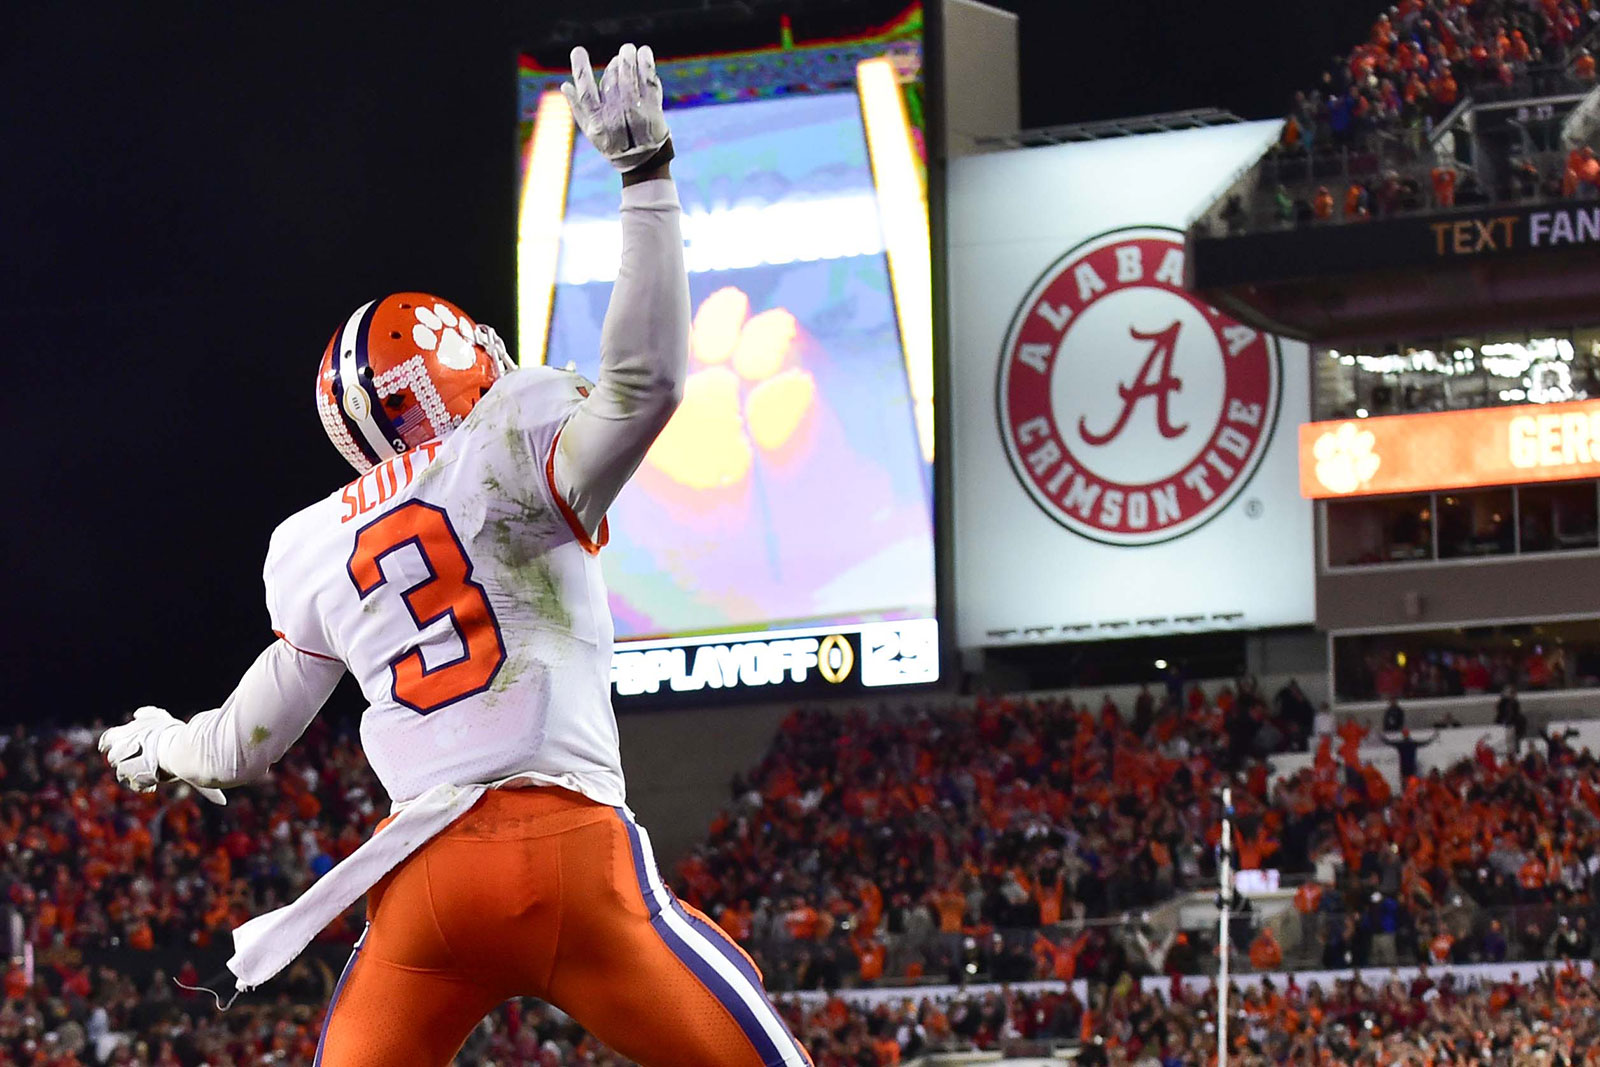 Jan 9, 2017; Tampa, FL, USA; Clemson Tigers wide receiver Artavis Scott (3) celebrates defeating Alabama Crimson Tide in the 2017 College Football Playoff National Championship Game at Raymond James Stadium. Mandatory Credit: Steve Mitchell-USA TODAY Sports